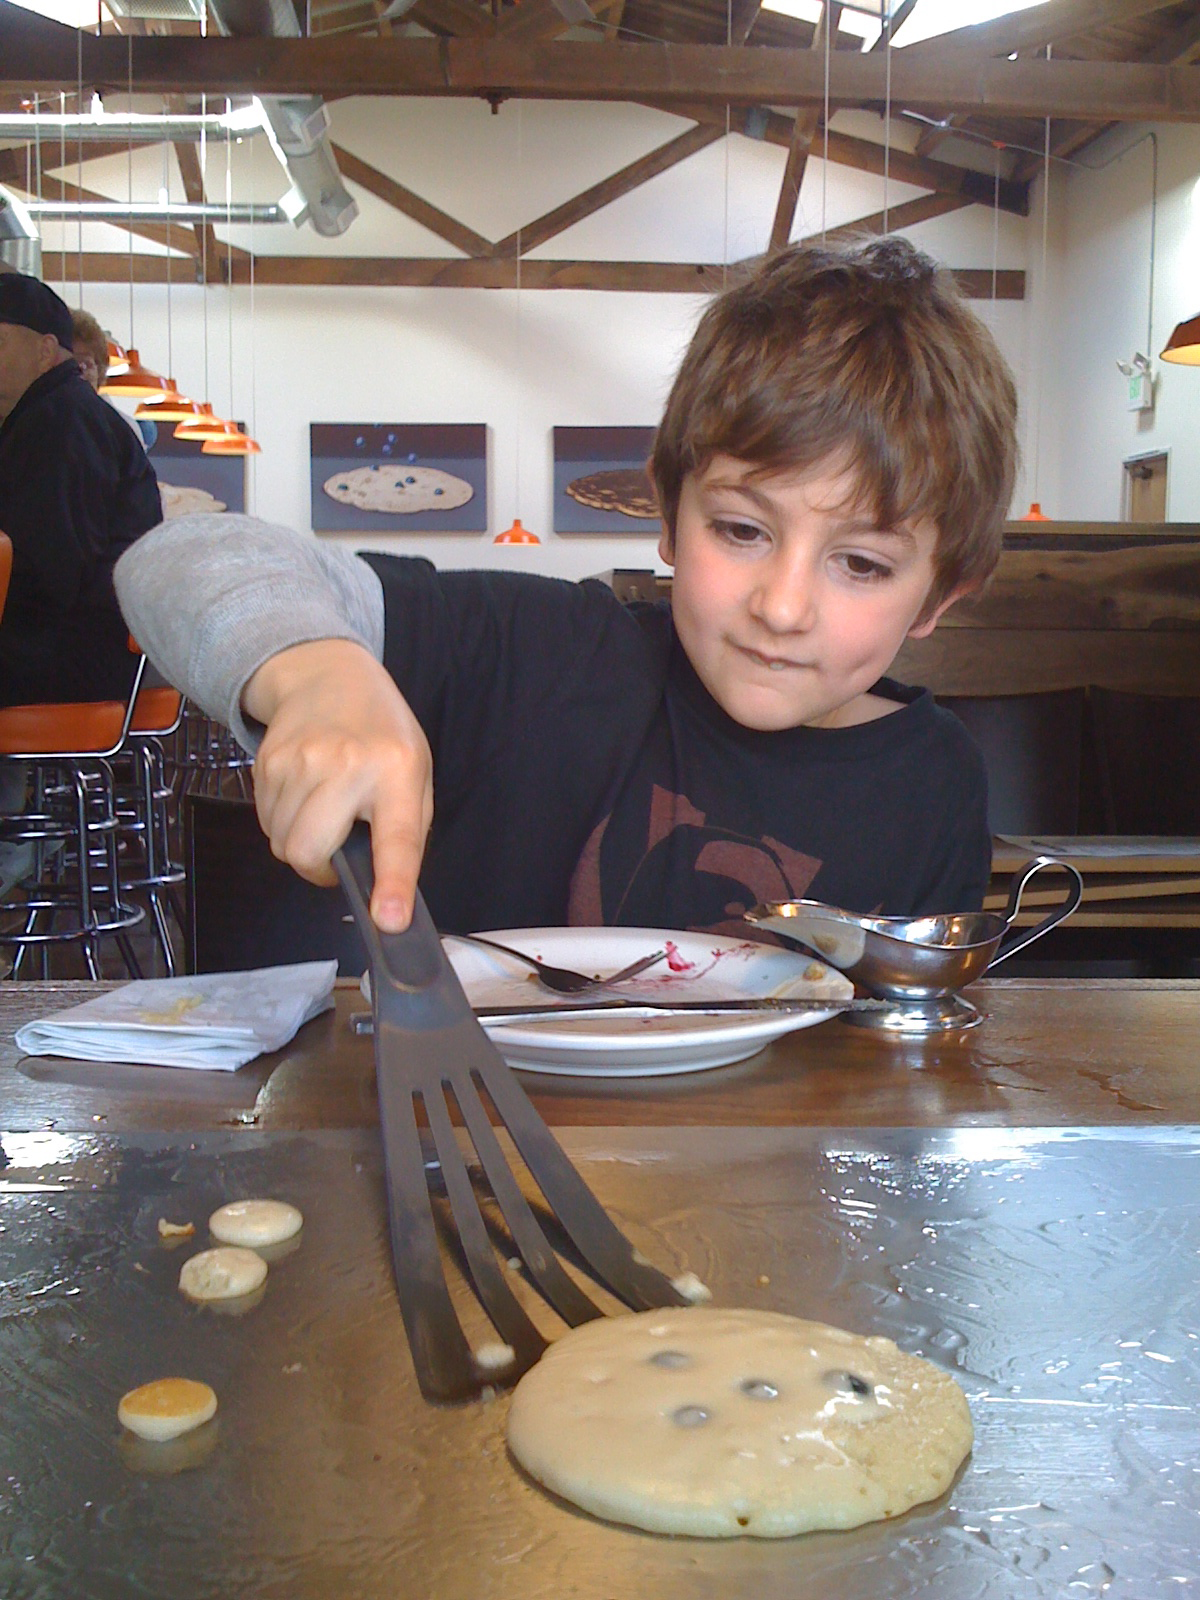 Slappy Cakes Make Your Own Pancakes In Portland